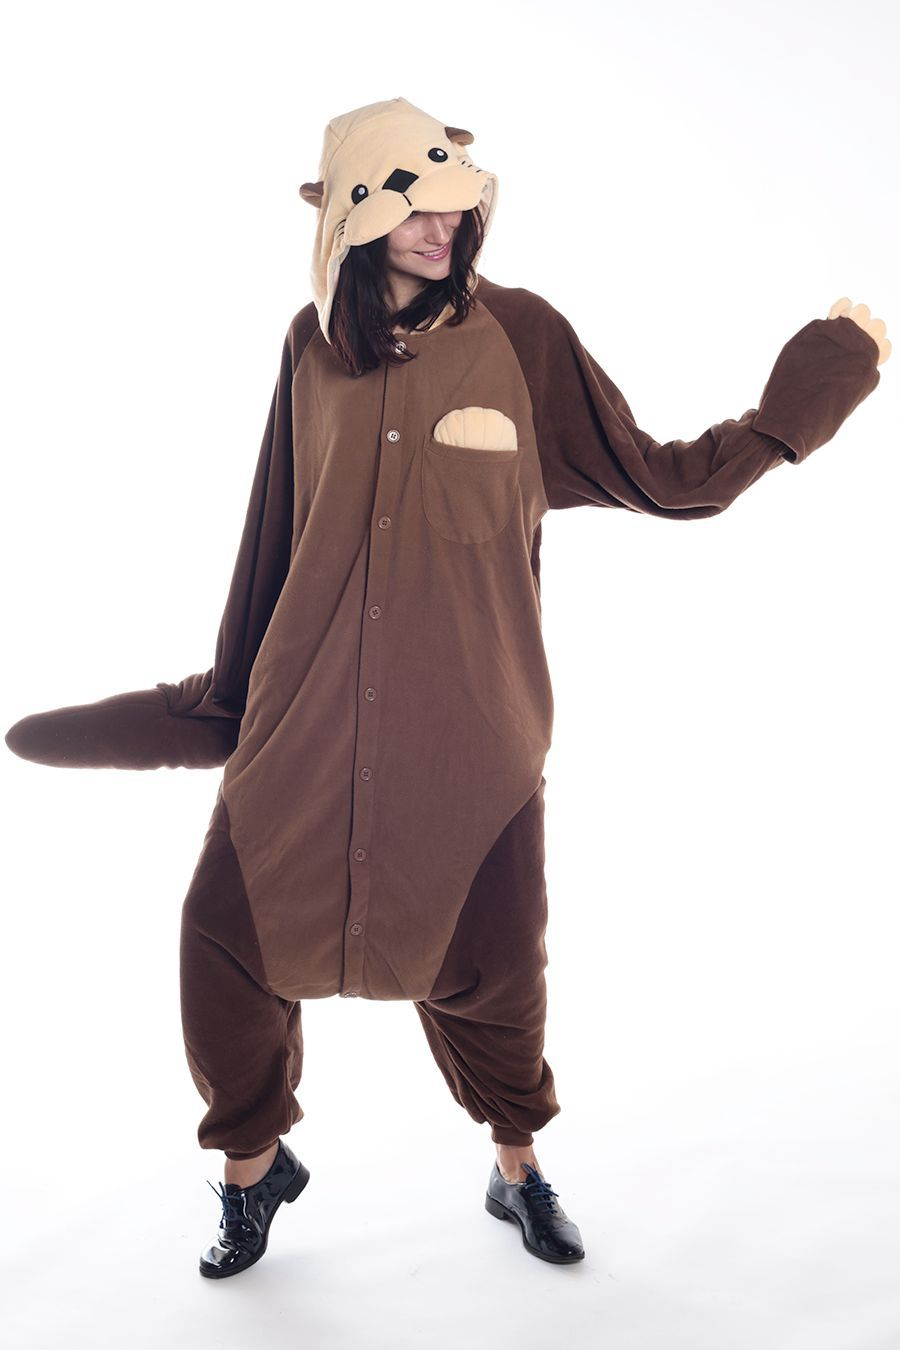 85e6a5346 Sea Otter | Otters | Otters, Onesie costumes, Sea otter